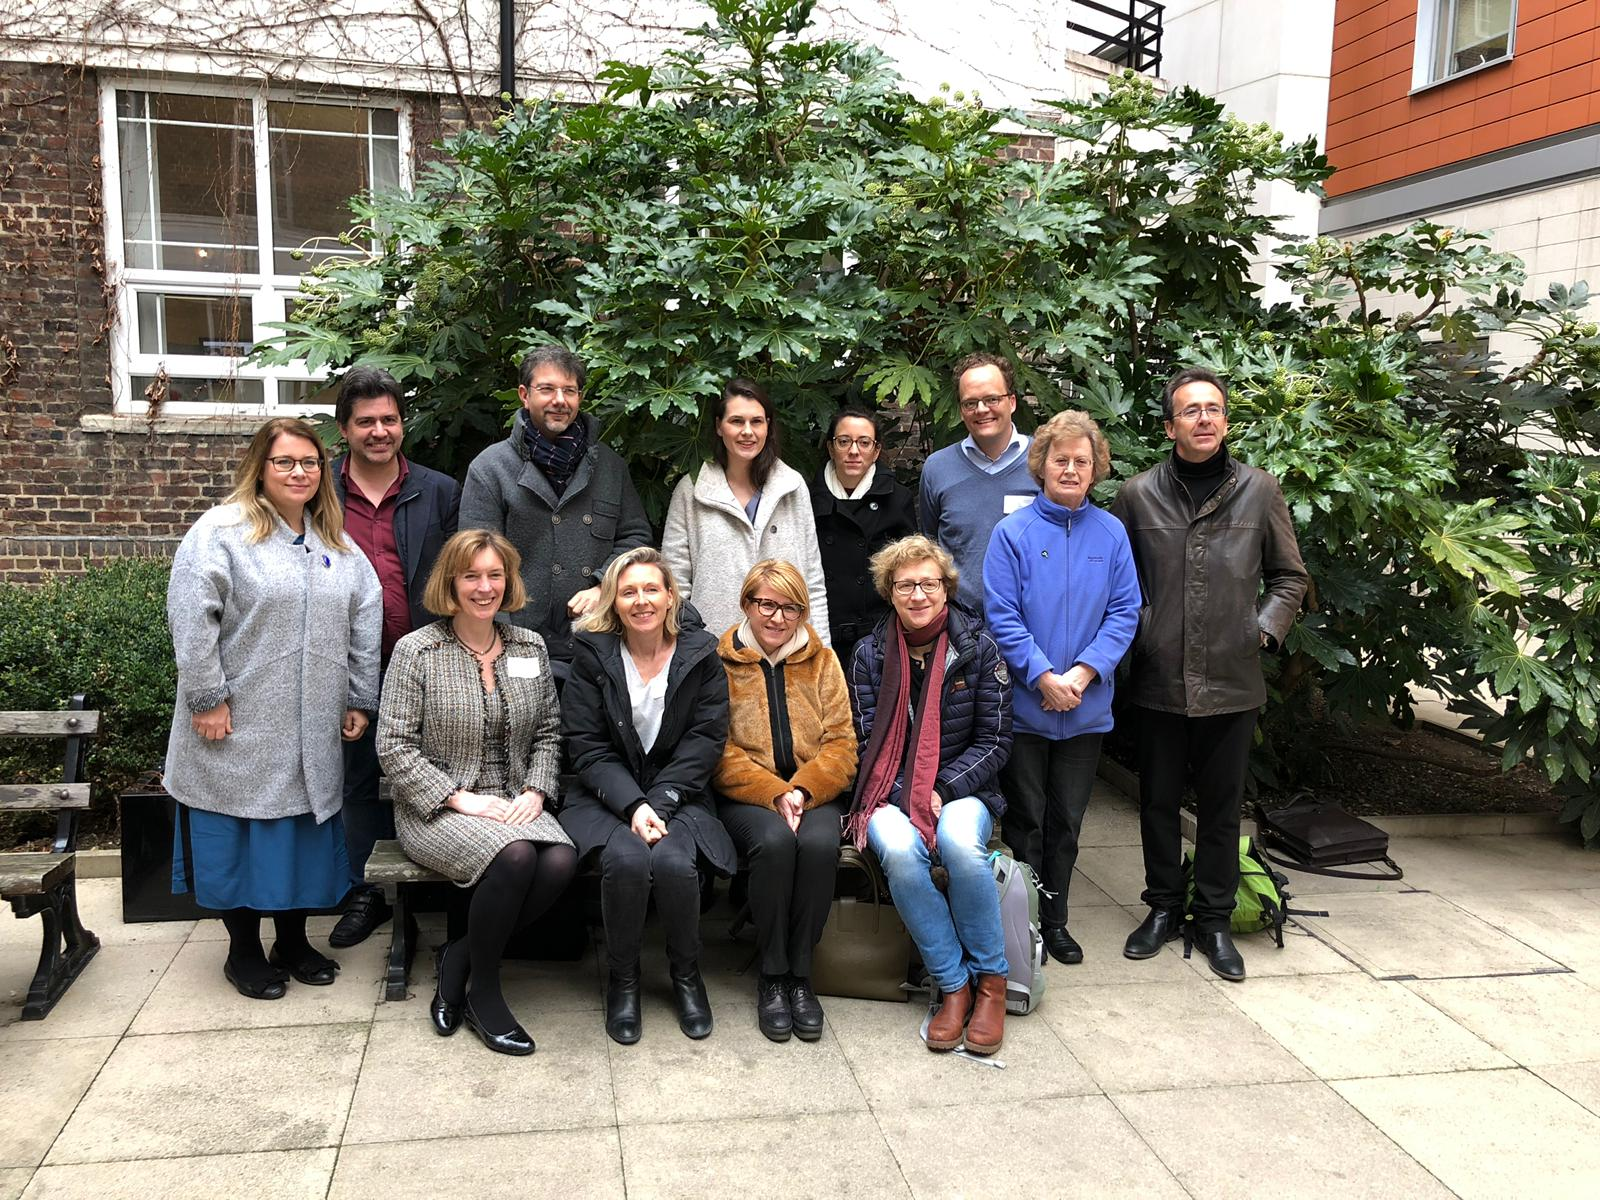 HHT WG Face to Face meeting in London